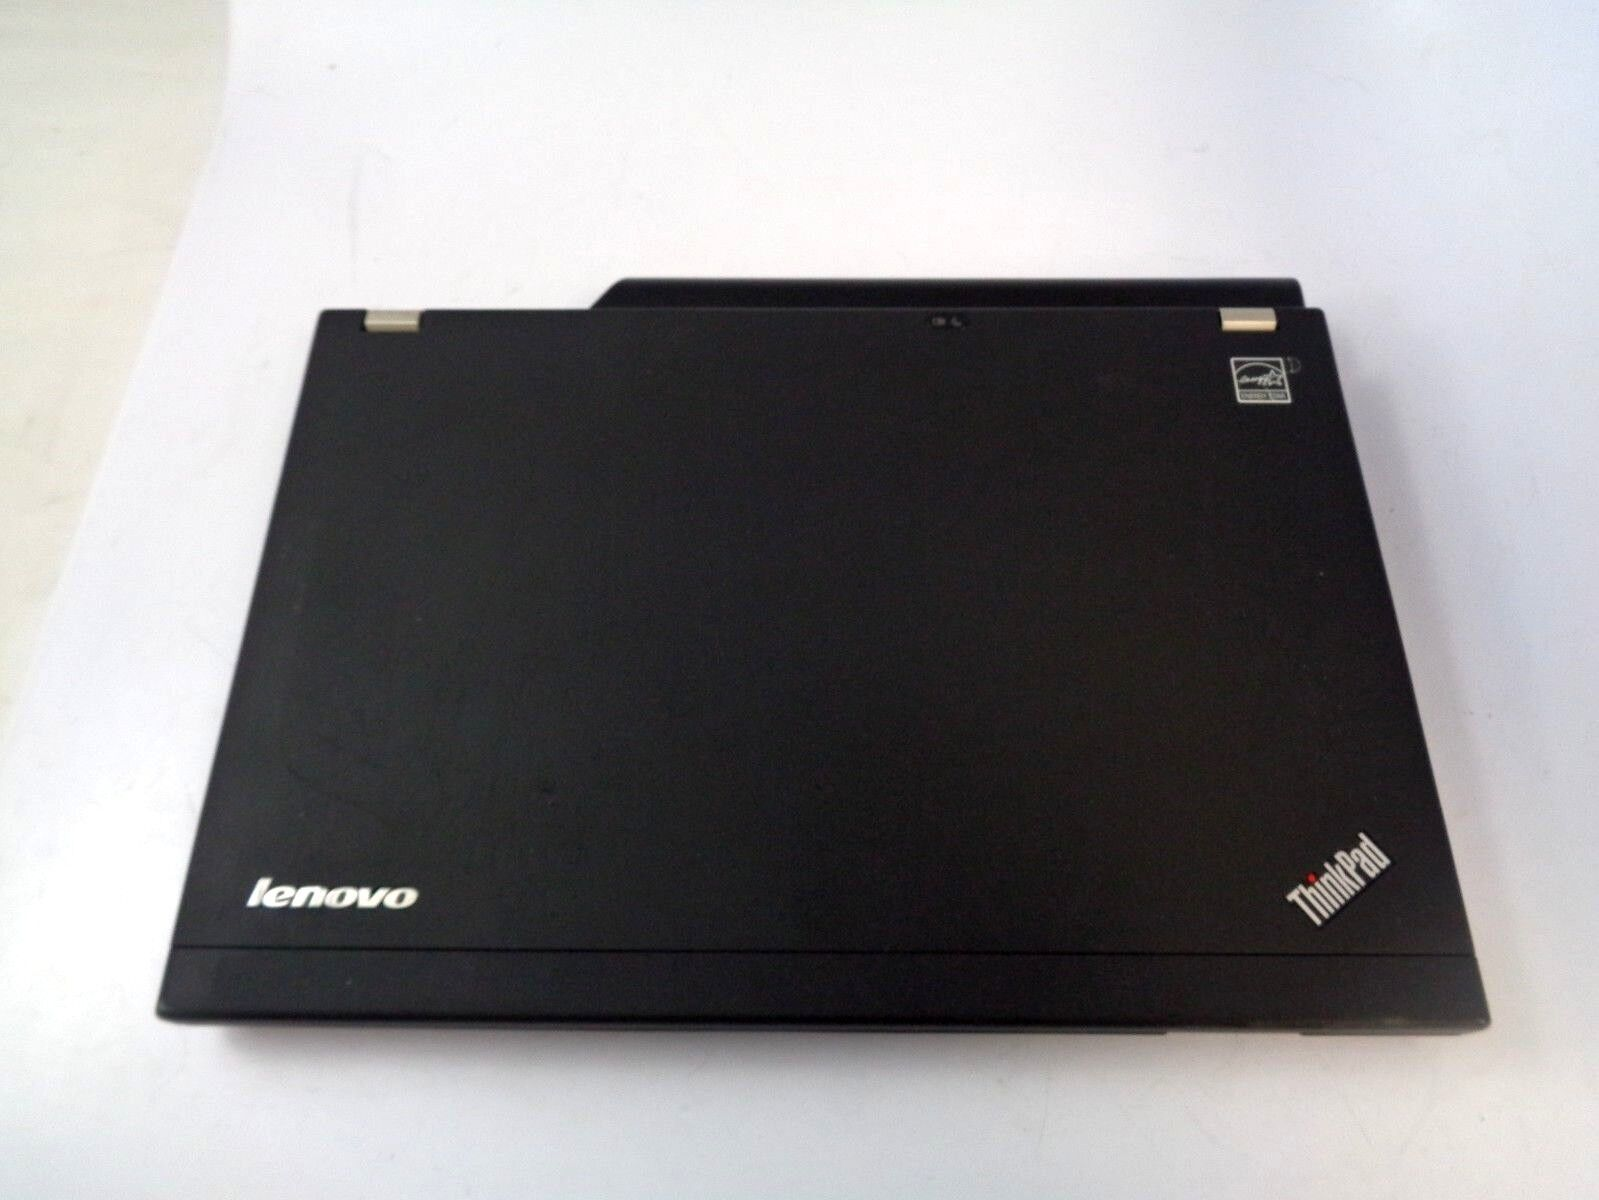 "Lenovo ThinkPad X220 12.5"" i5-2520m 2.5GHz 4GB RAM 320GB HDD Win 7 Pro Hot Deal"